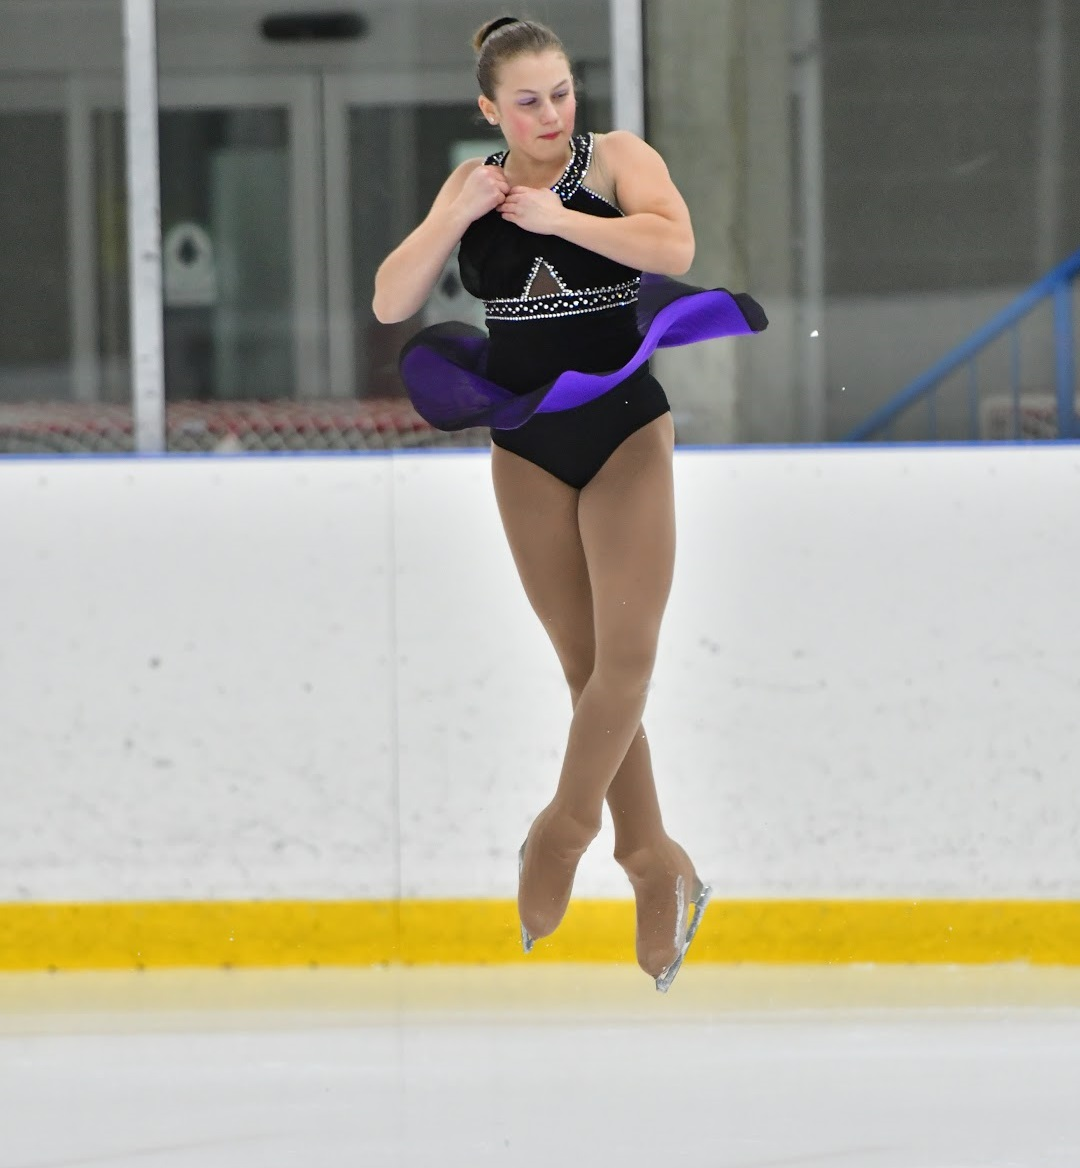 For Kaitlyn Brushey, skating jumps make her feel like she's flying (Photo: Daniel Earl Photography)